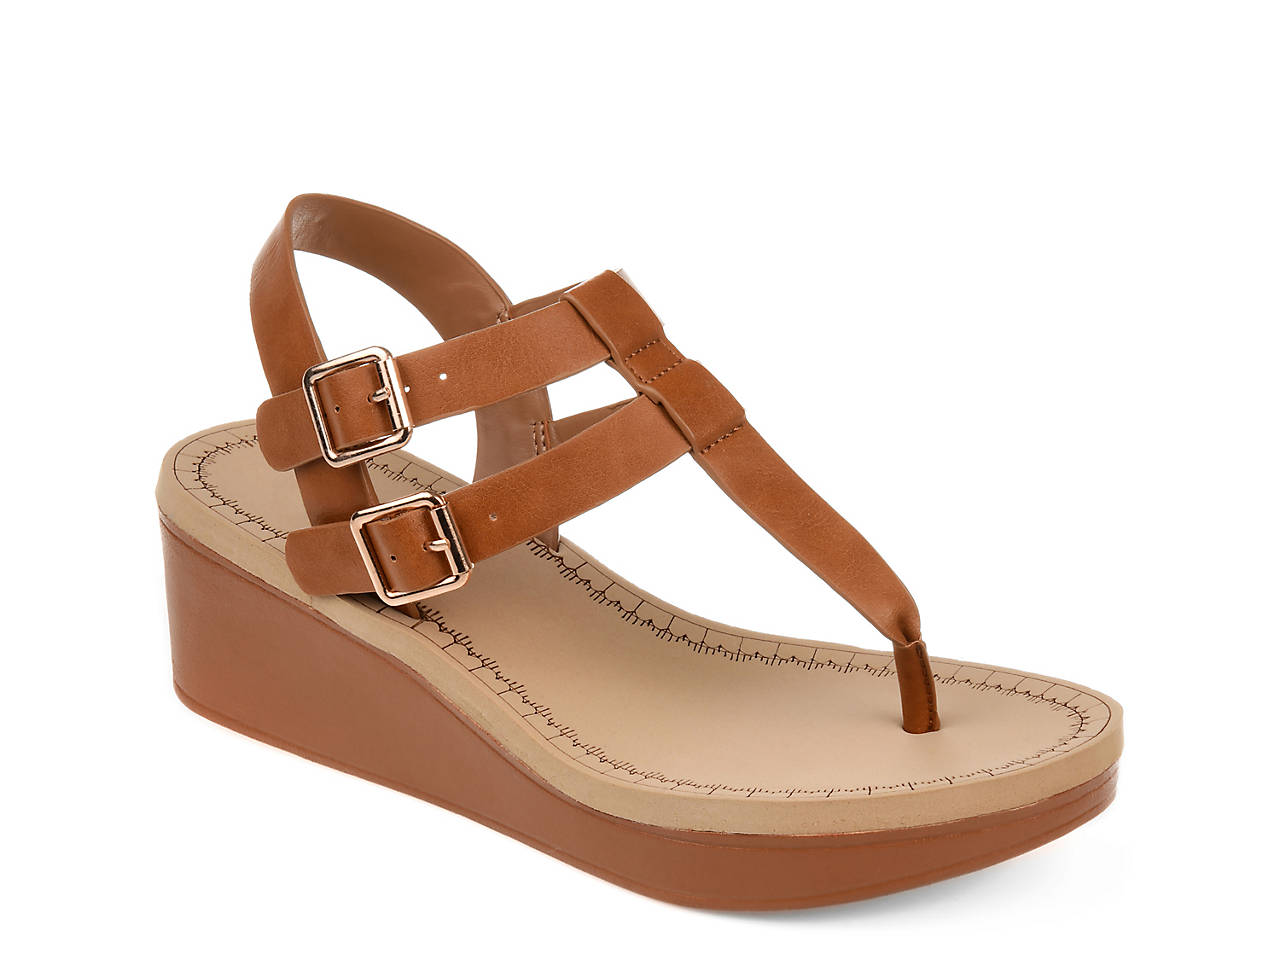 1c66f859275a Journee Collection Bianca Wedge Sandal Women s Shoes